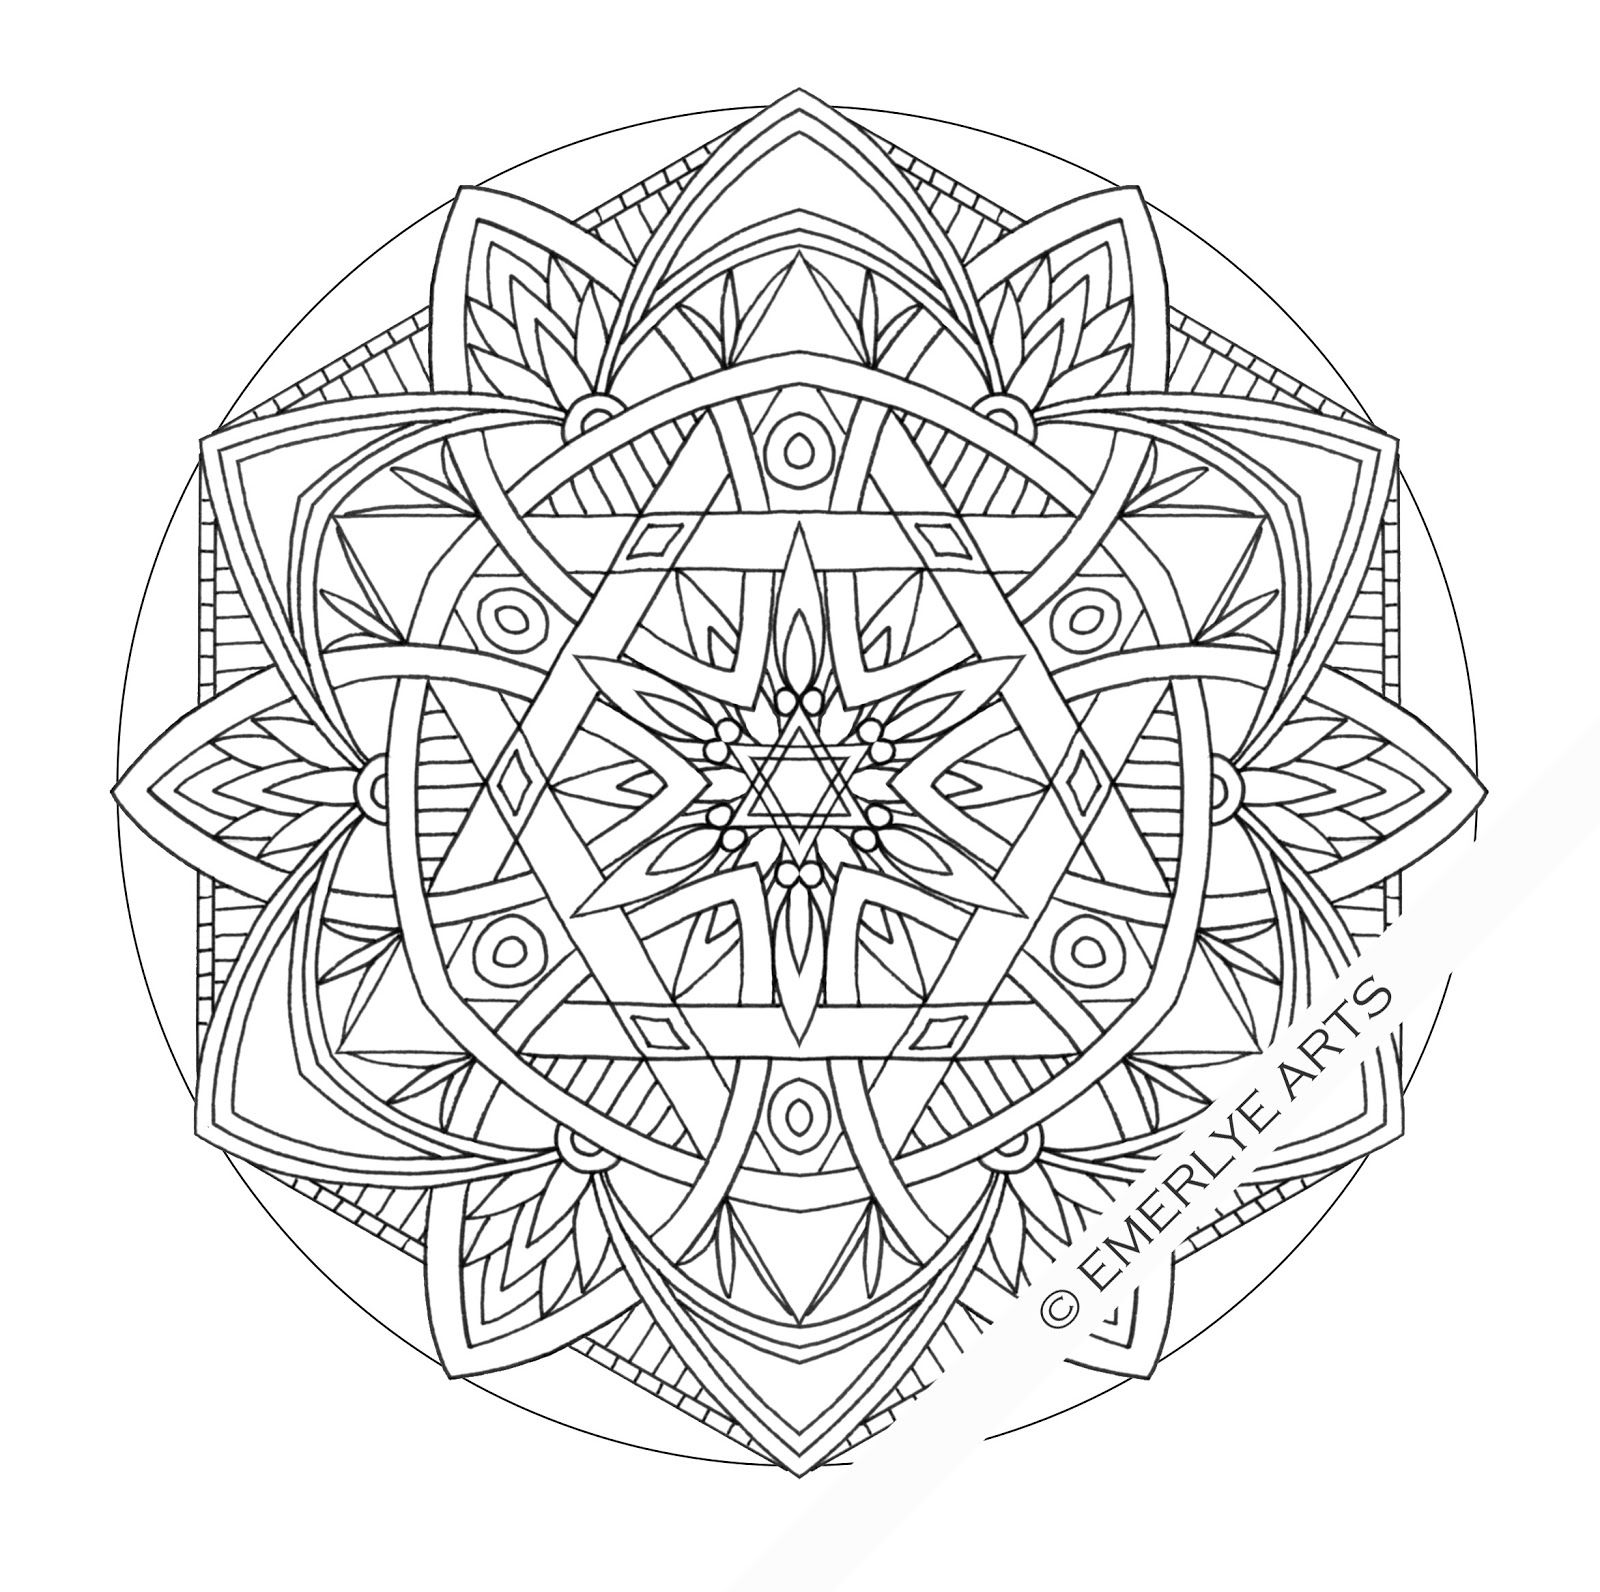 Adult coloring pages free printables mandala - Find This Pin And More On Mandalas Free Printable Mandala Coloring Pages Adults Coloring